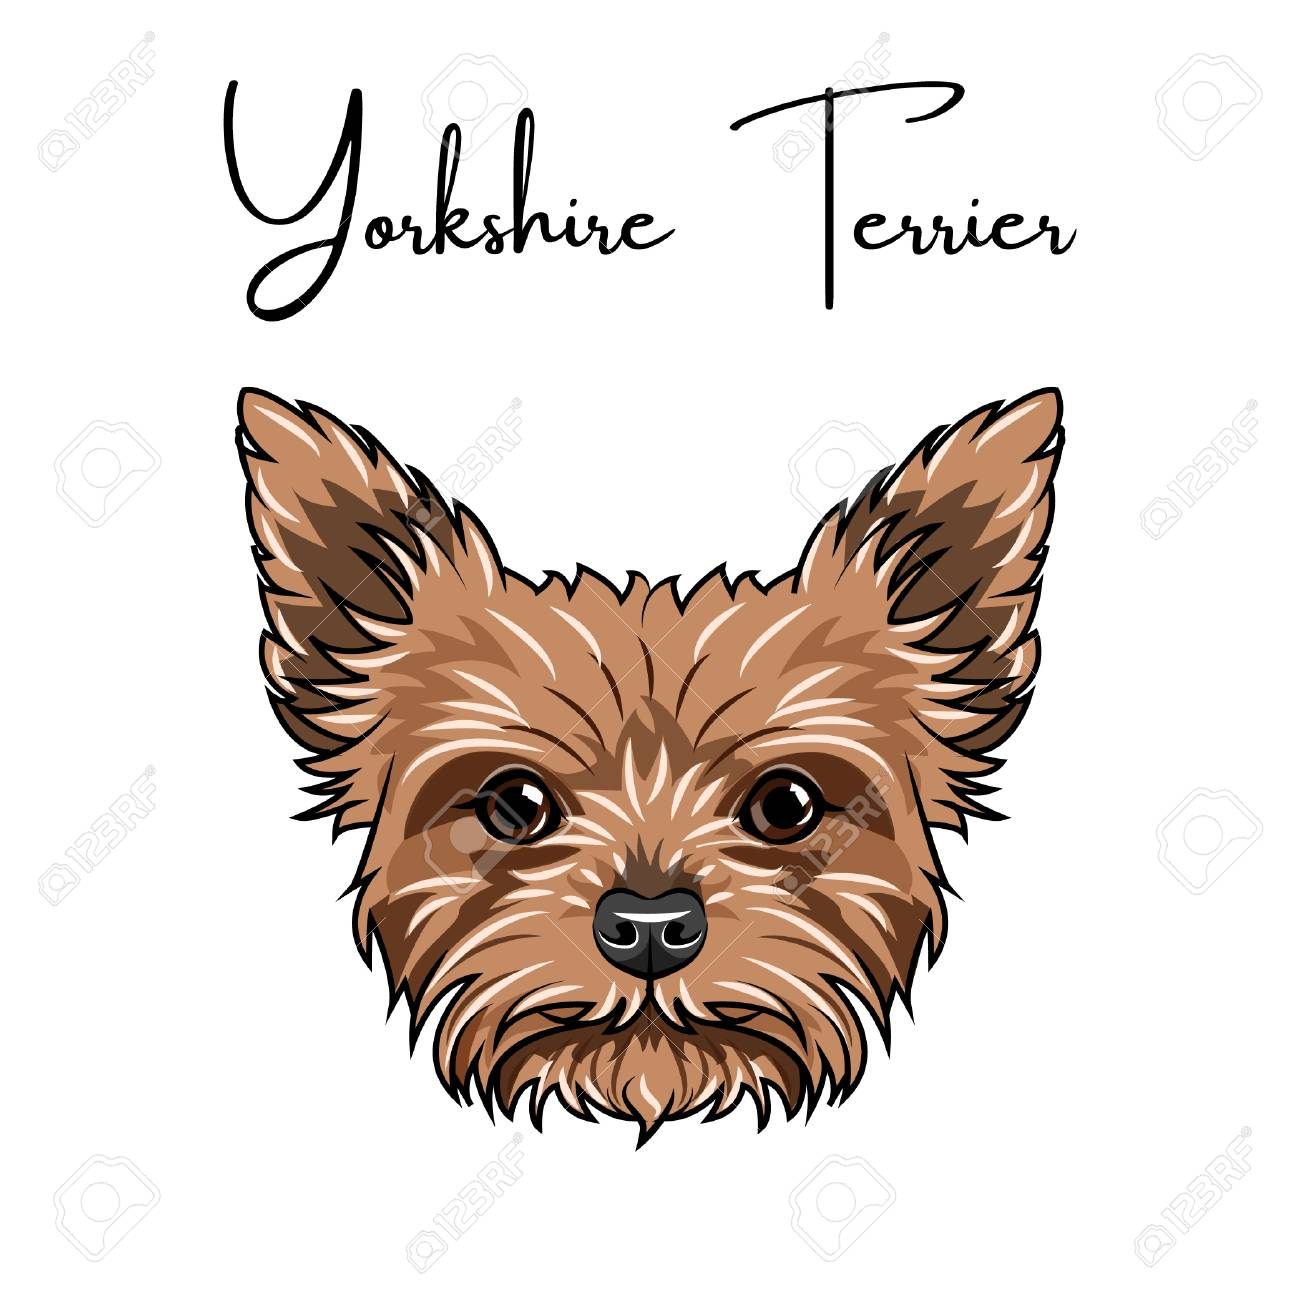 Yorkshire Terrier Portrait Vector Illustration Royalty Free Cliparts